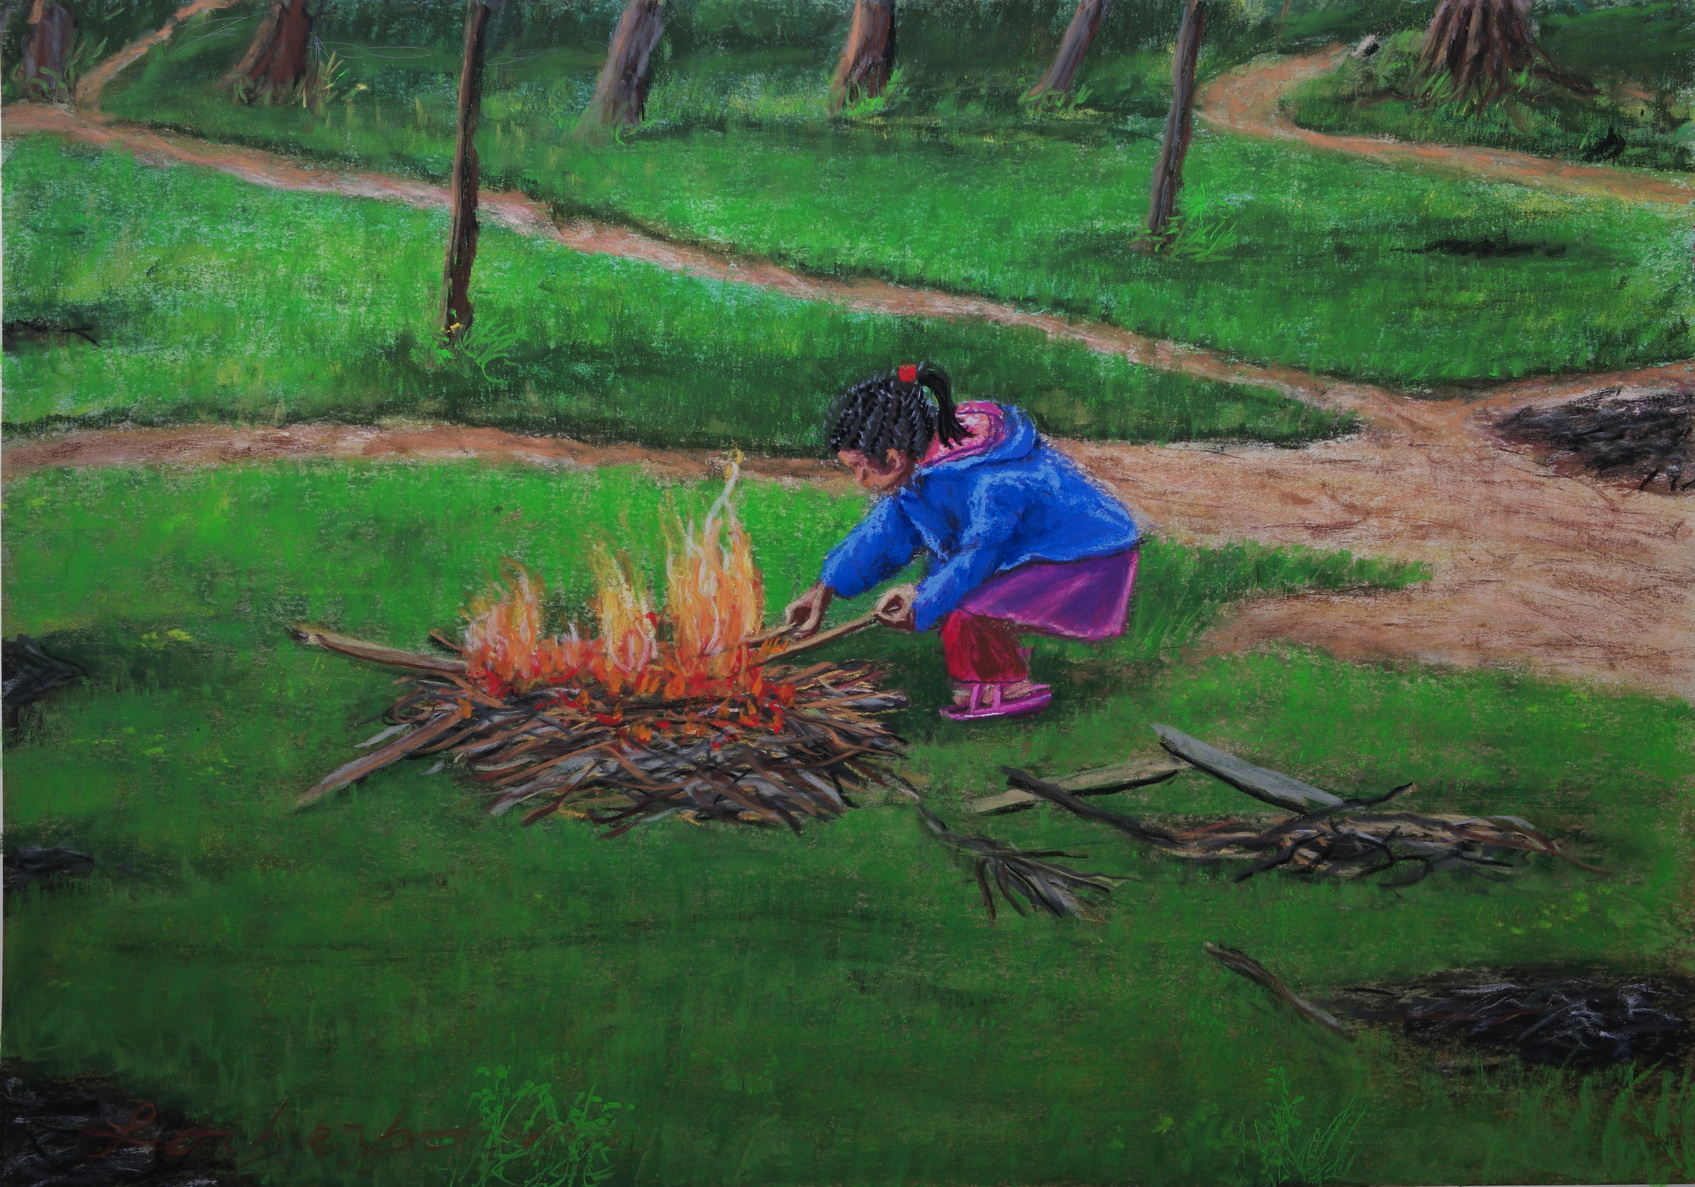 Little girl playing fire, Soft pastels, Koh Lanta, Laos. Lorberboim Soft Pastel Painting.